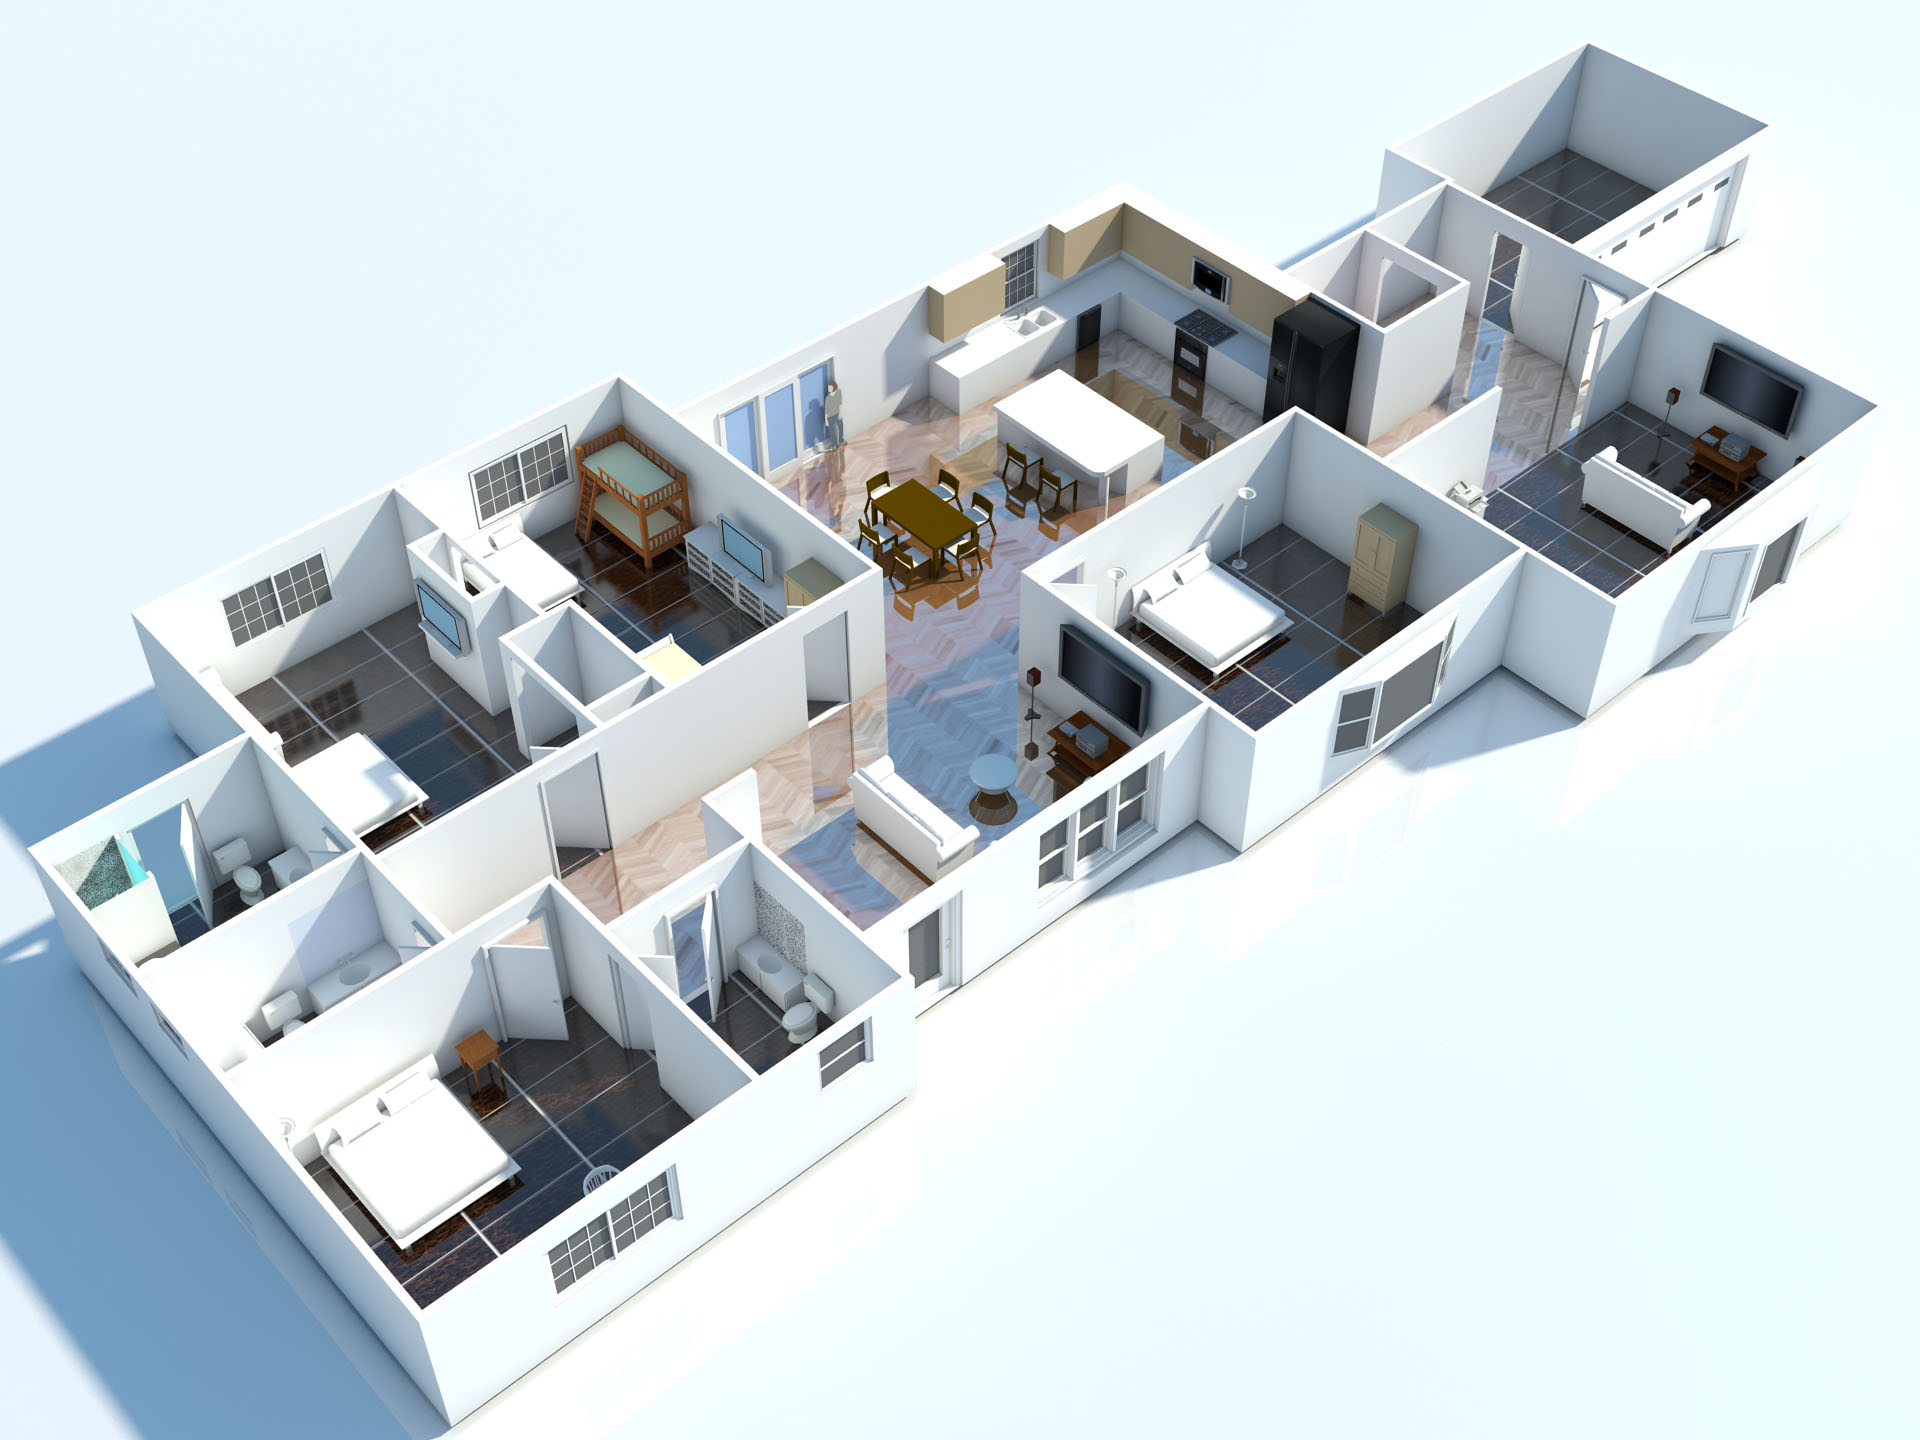 Interior 3d floor plan 3d floorplans visuals Hd home design 3d